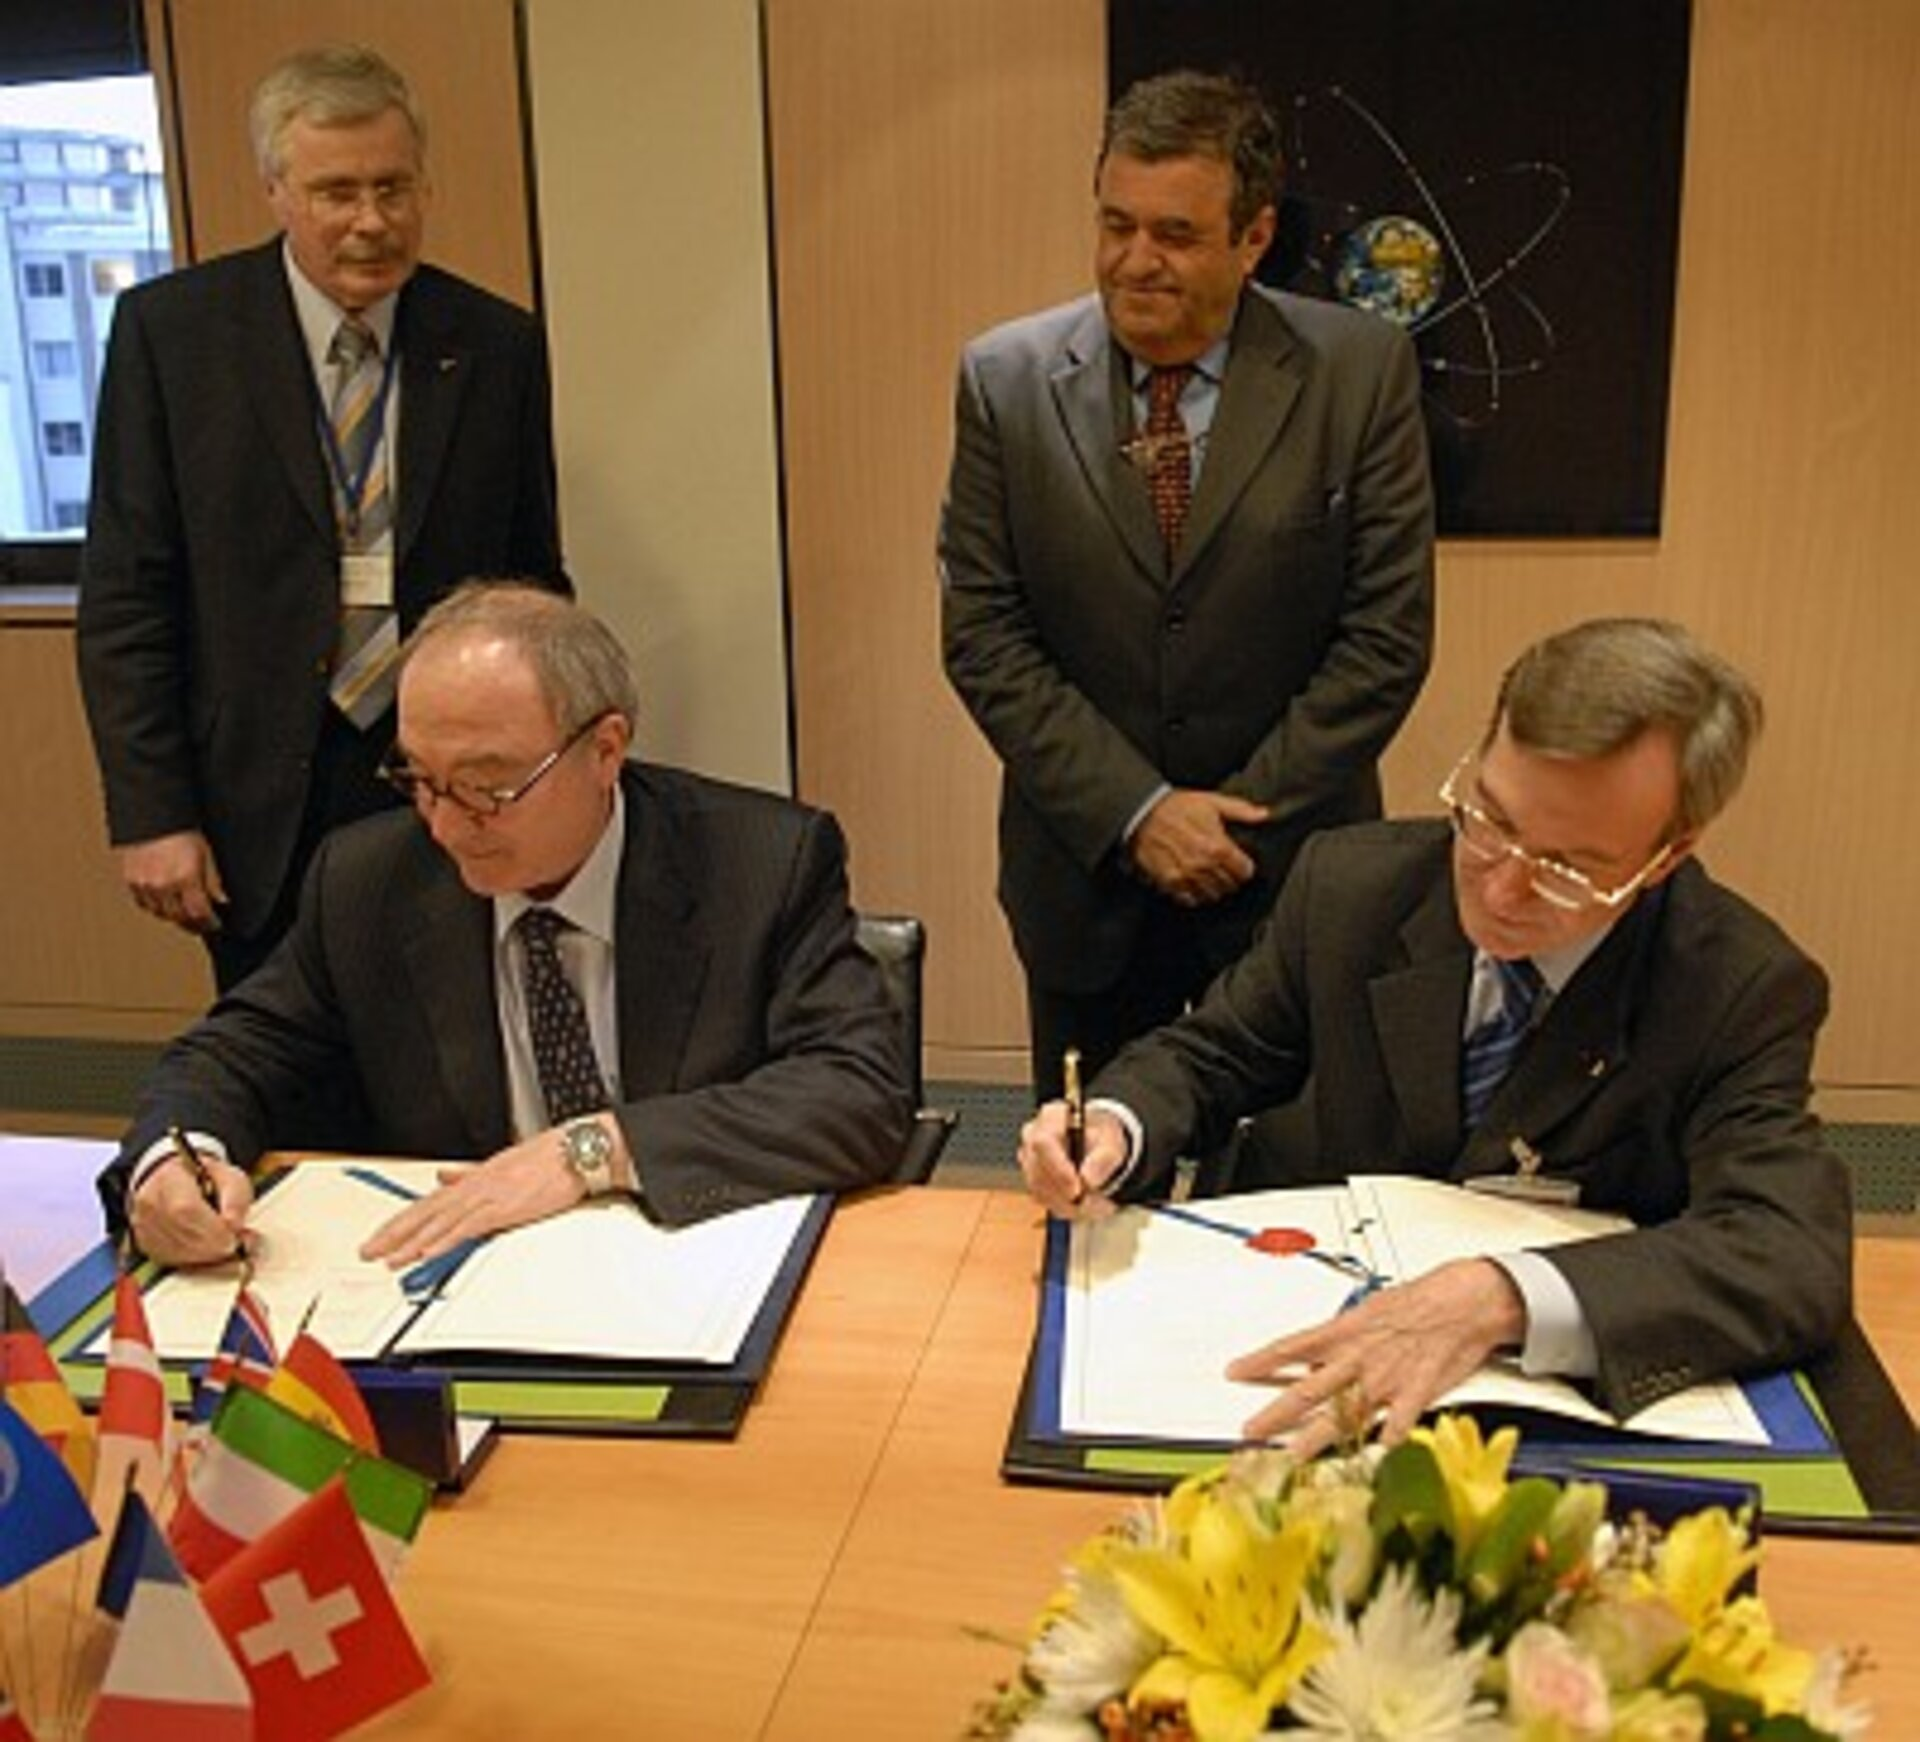 Signing of the Alphabus co-operation agreement